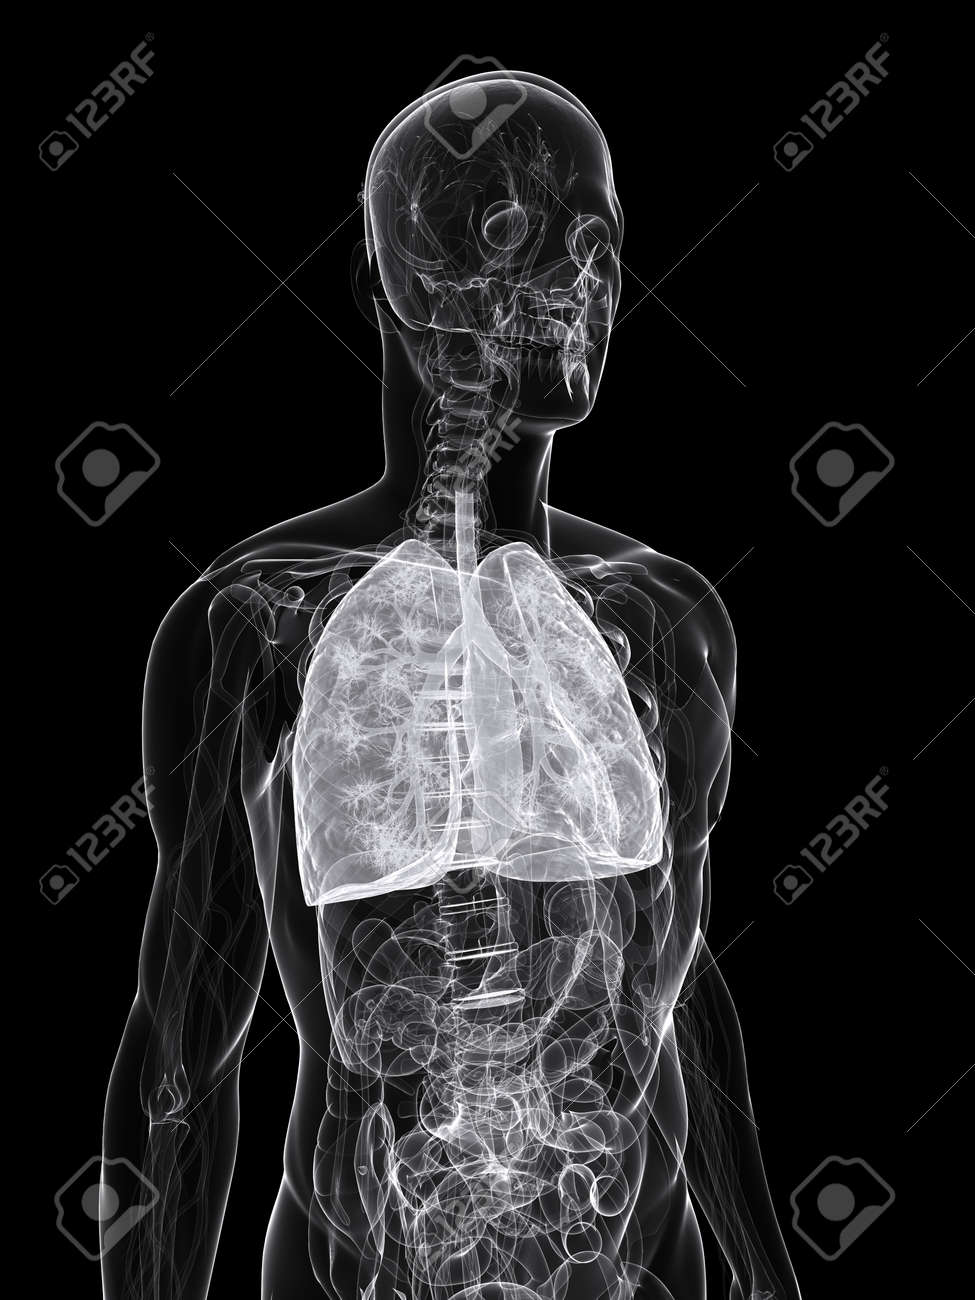 X-ray - Anatomy Illustration - Lung Stock Photo, Picture And Royalty ...